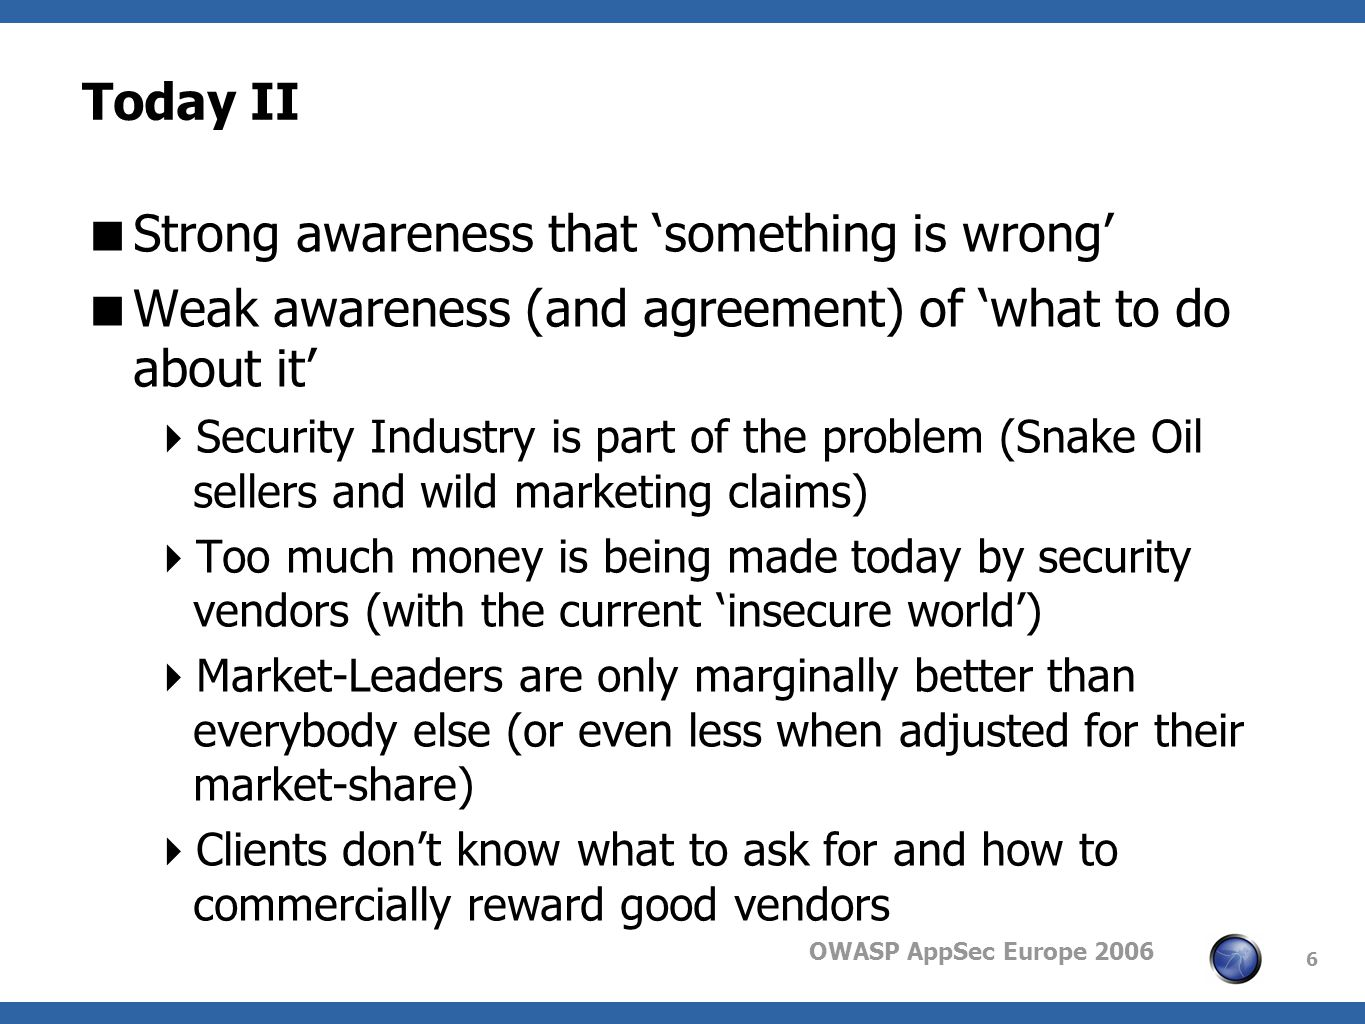 OWASP AppSec Europe 2006 6 Today II Strong awareness that something is wrong Weak awareness (and agreement) of what to do about it Security Industry i